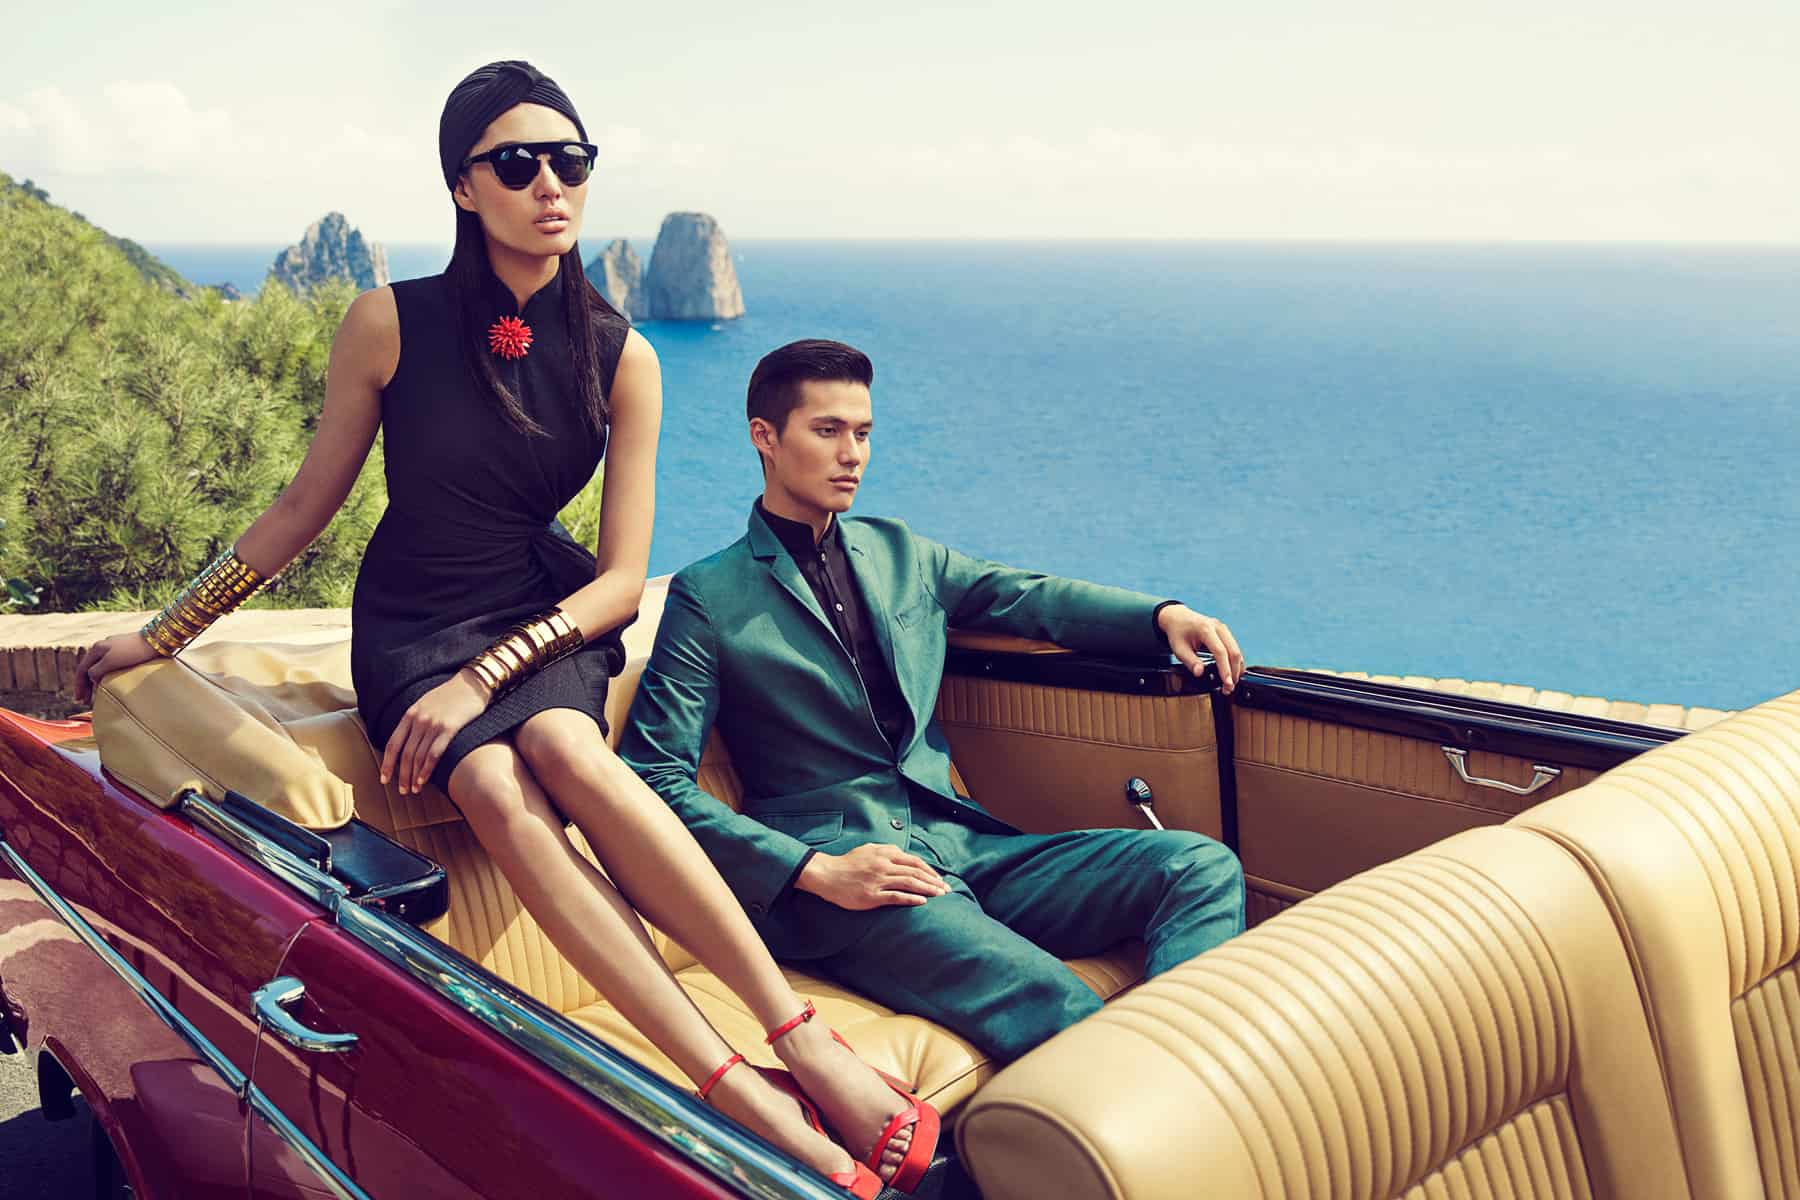 Luxury ad campaign targettig Chinese consumers